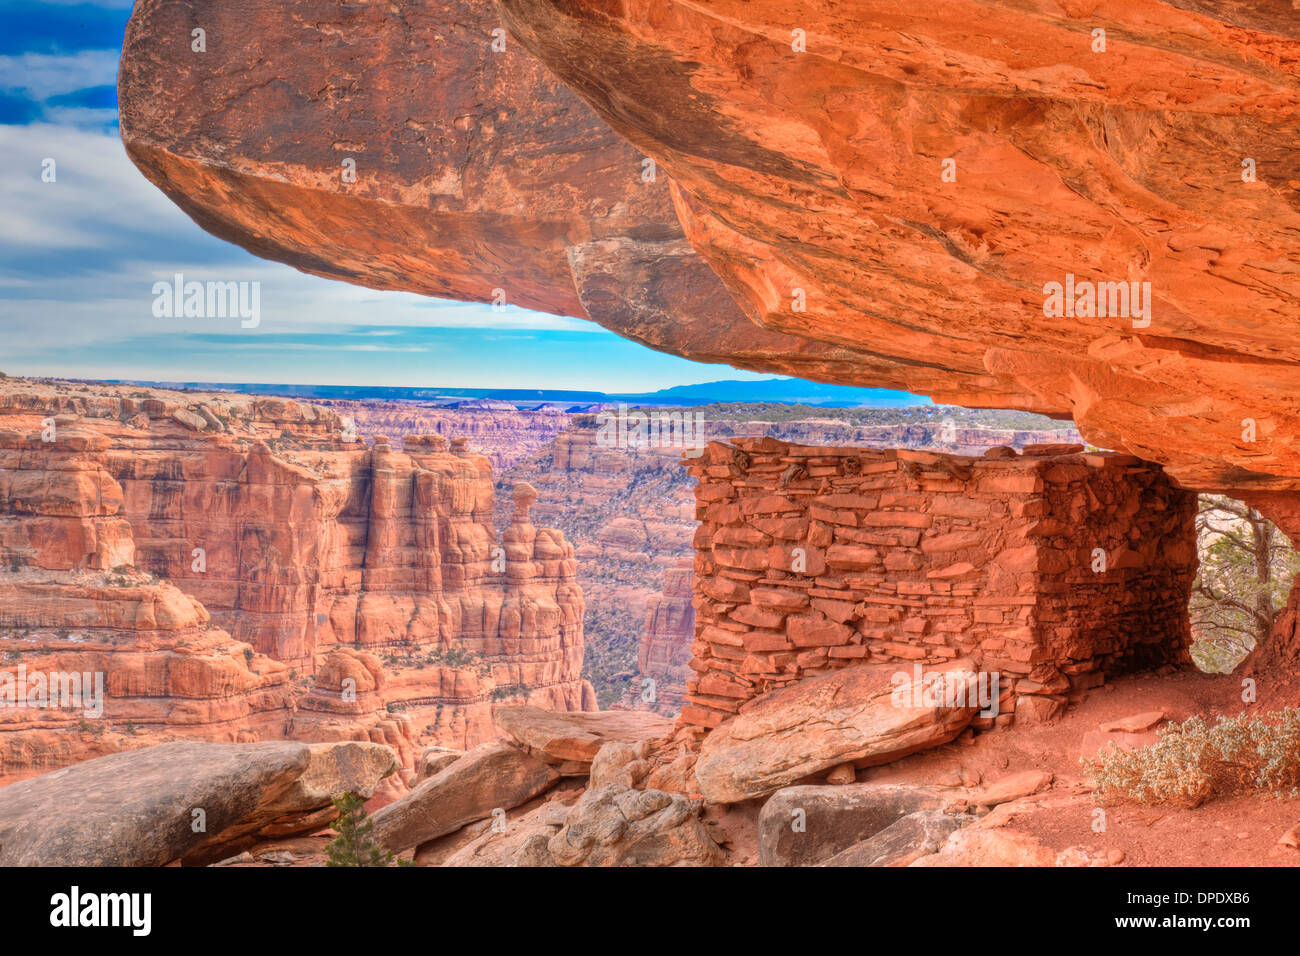 Ancestral Puebloan ruin protected by rock overhang Utah Proposed BLM Wilderness Basketmaker Culture cliff dwellings - Stock Image